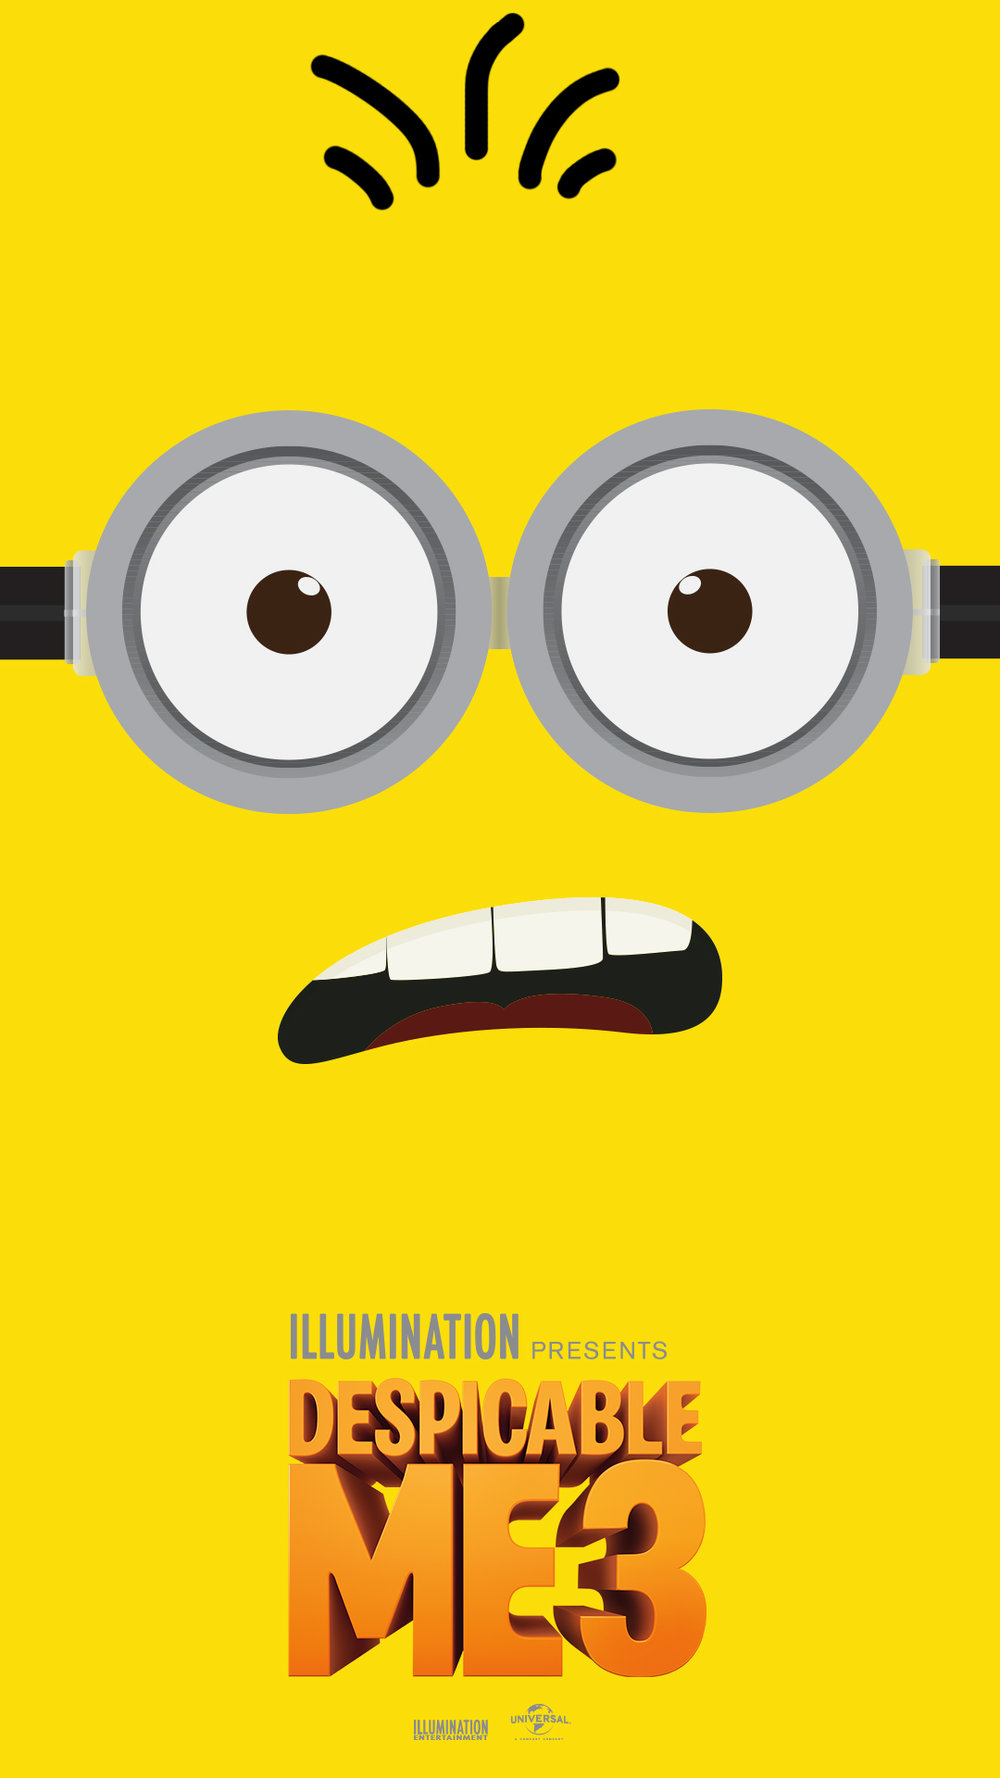 Zedge_Wallpaper_DespicableMe3_08_1080x1920.jpg